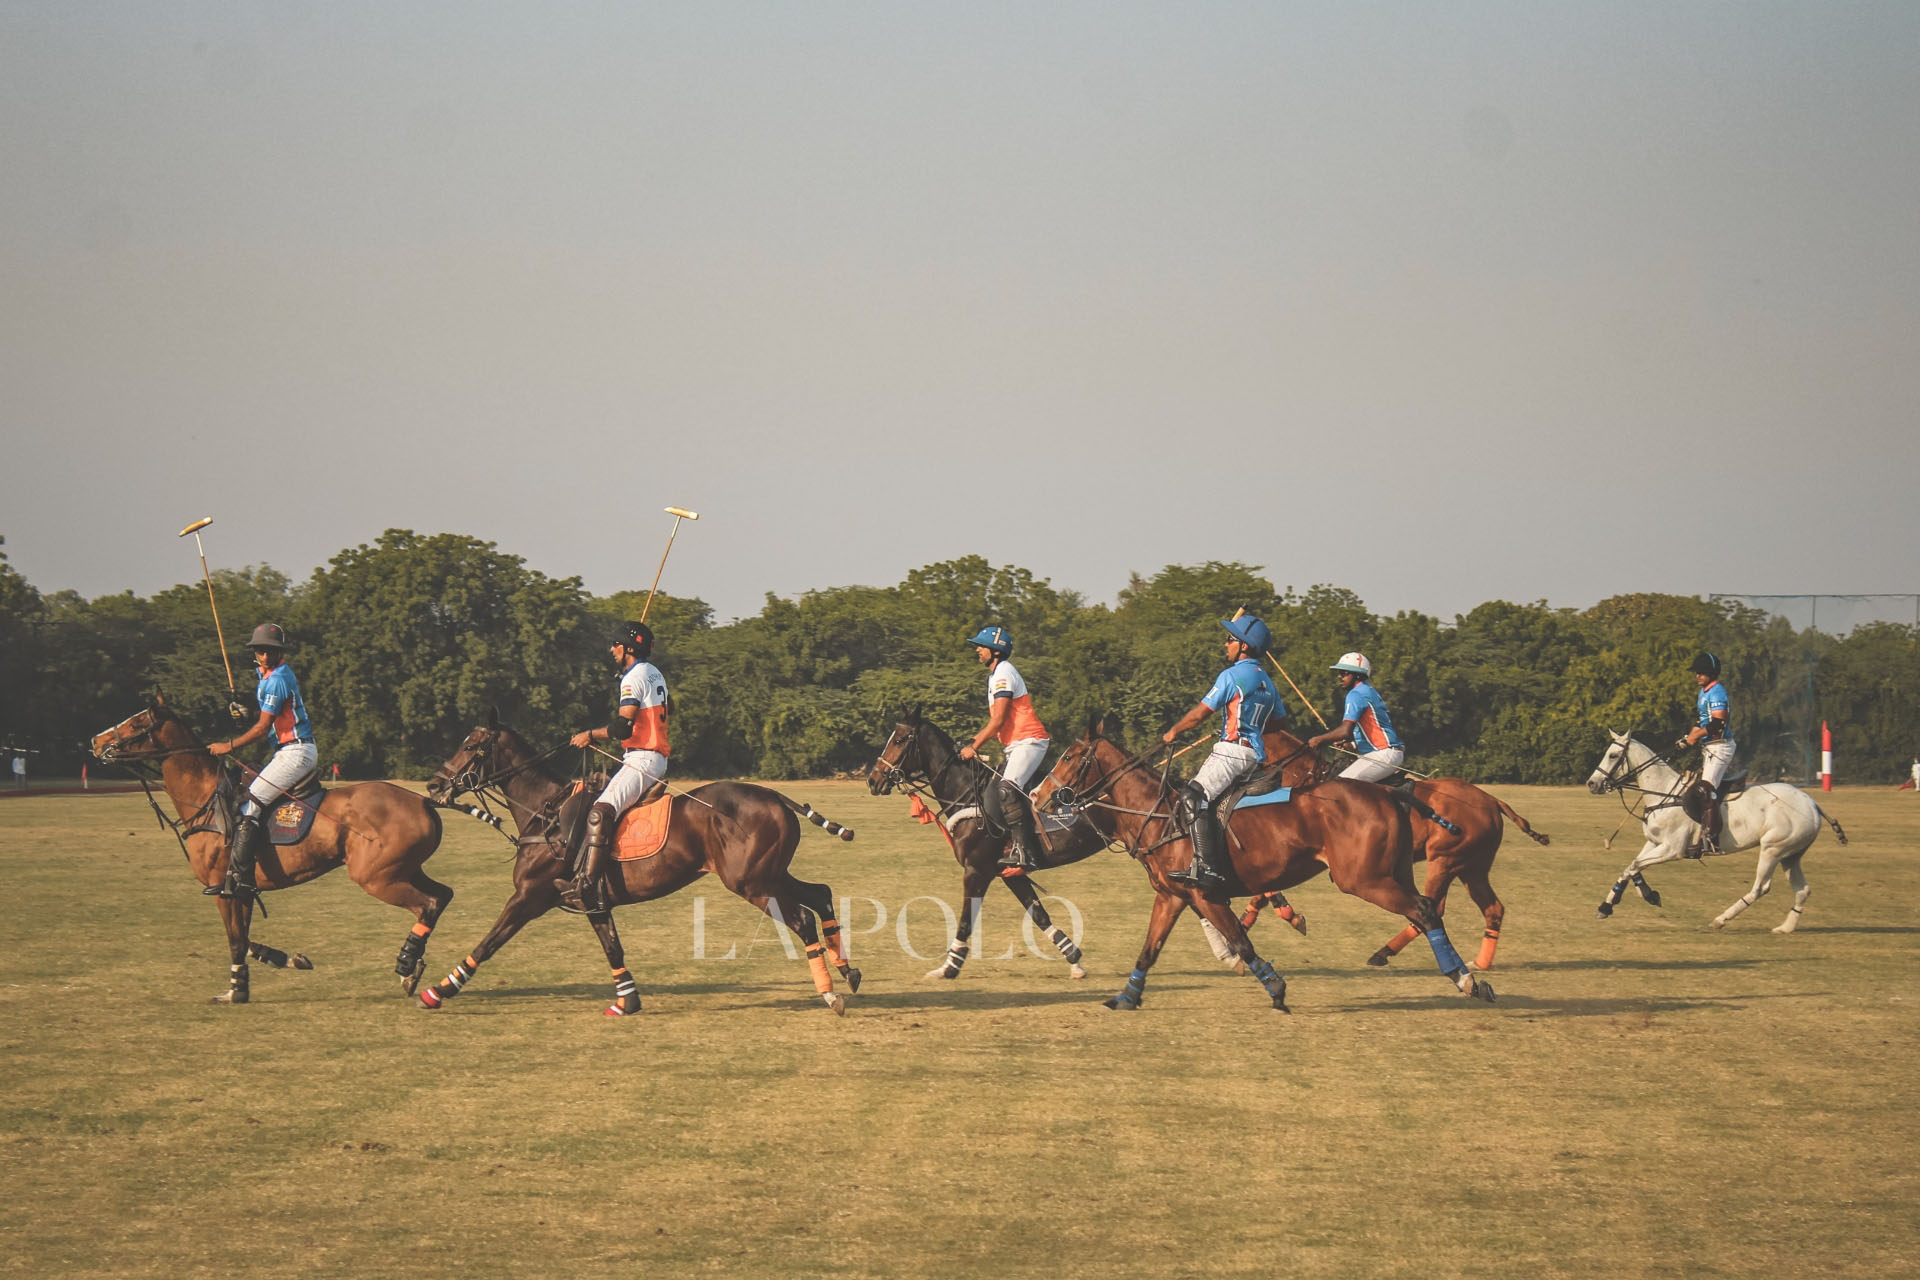 SAHARA WARRIORS DEFEAT JODHPUR POLO FACTORY AT THE RAJPUTANA & CENTRAL INDIA CUP (10 Goals), 21ST JODHPUR POLO SEASON, 2020, WILL TAKE ON LOS POLISTAS IN THE FINALS ON 26TH DECEMBER!